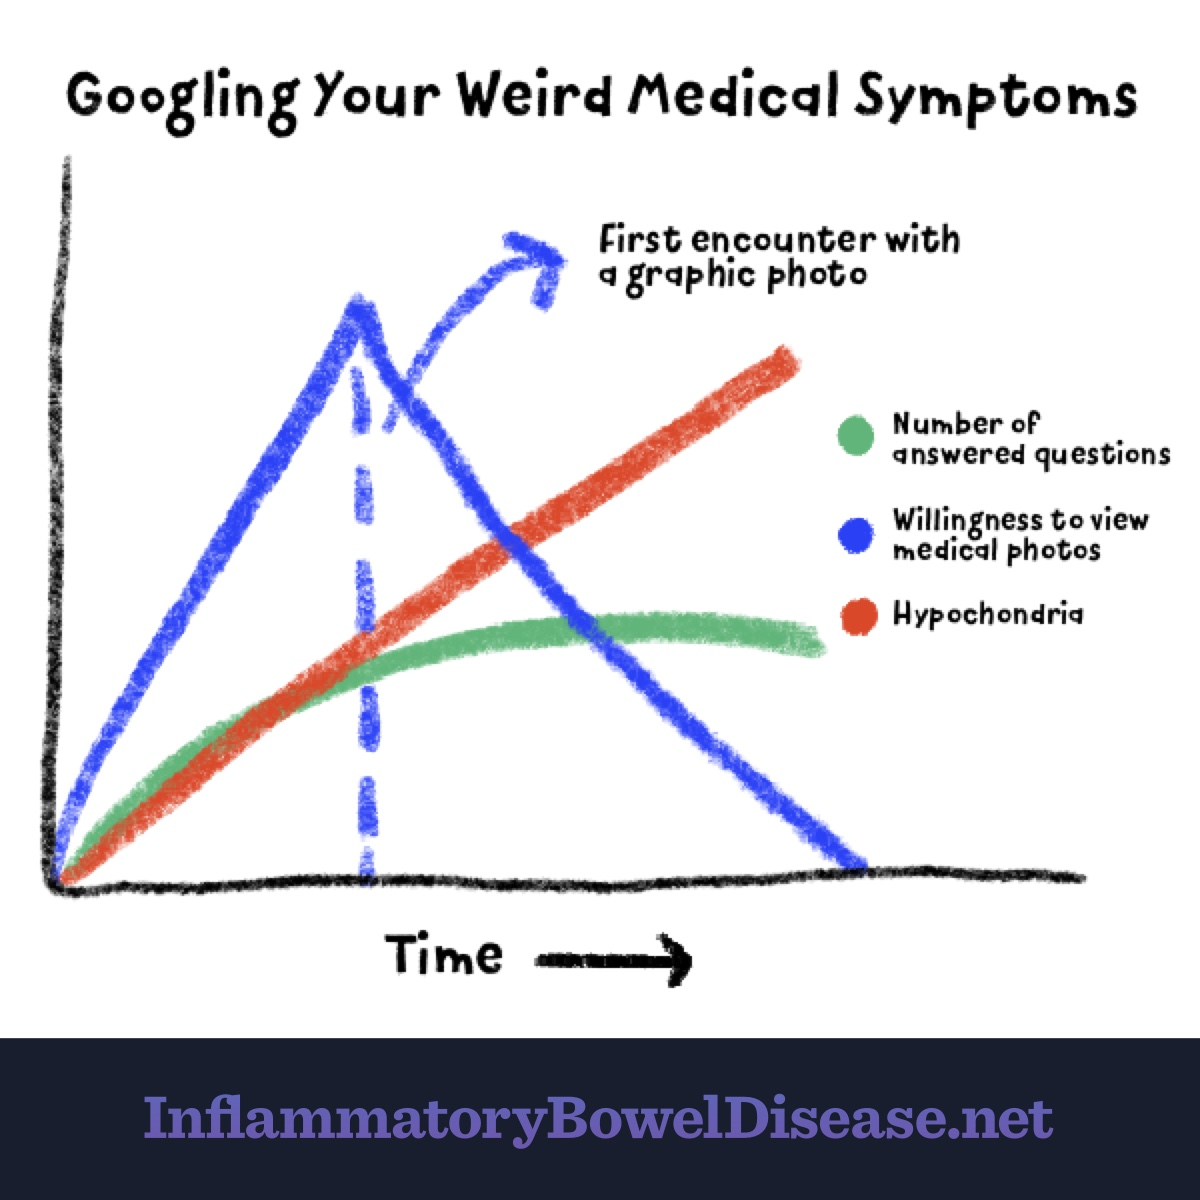 A graph that shows hypochondria rising as number of answered questions declines when googling weird medical symptoms.